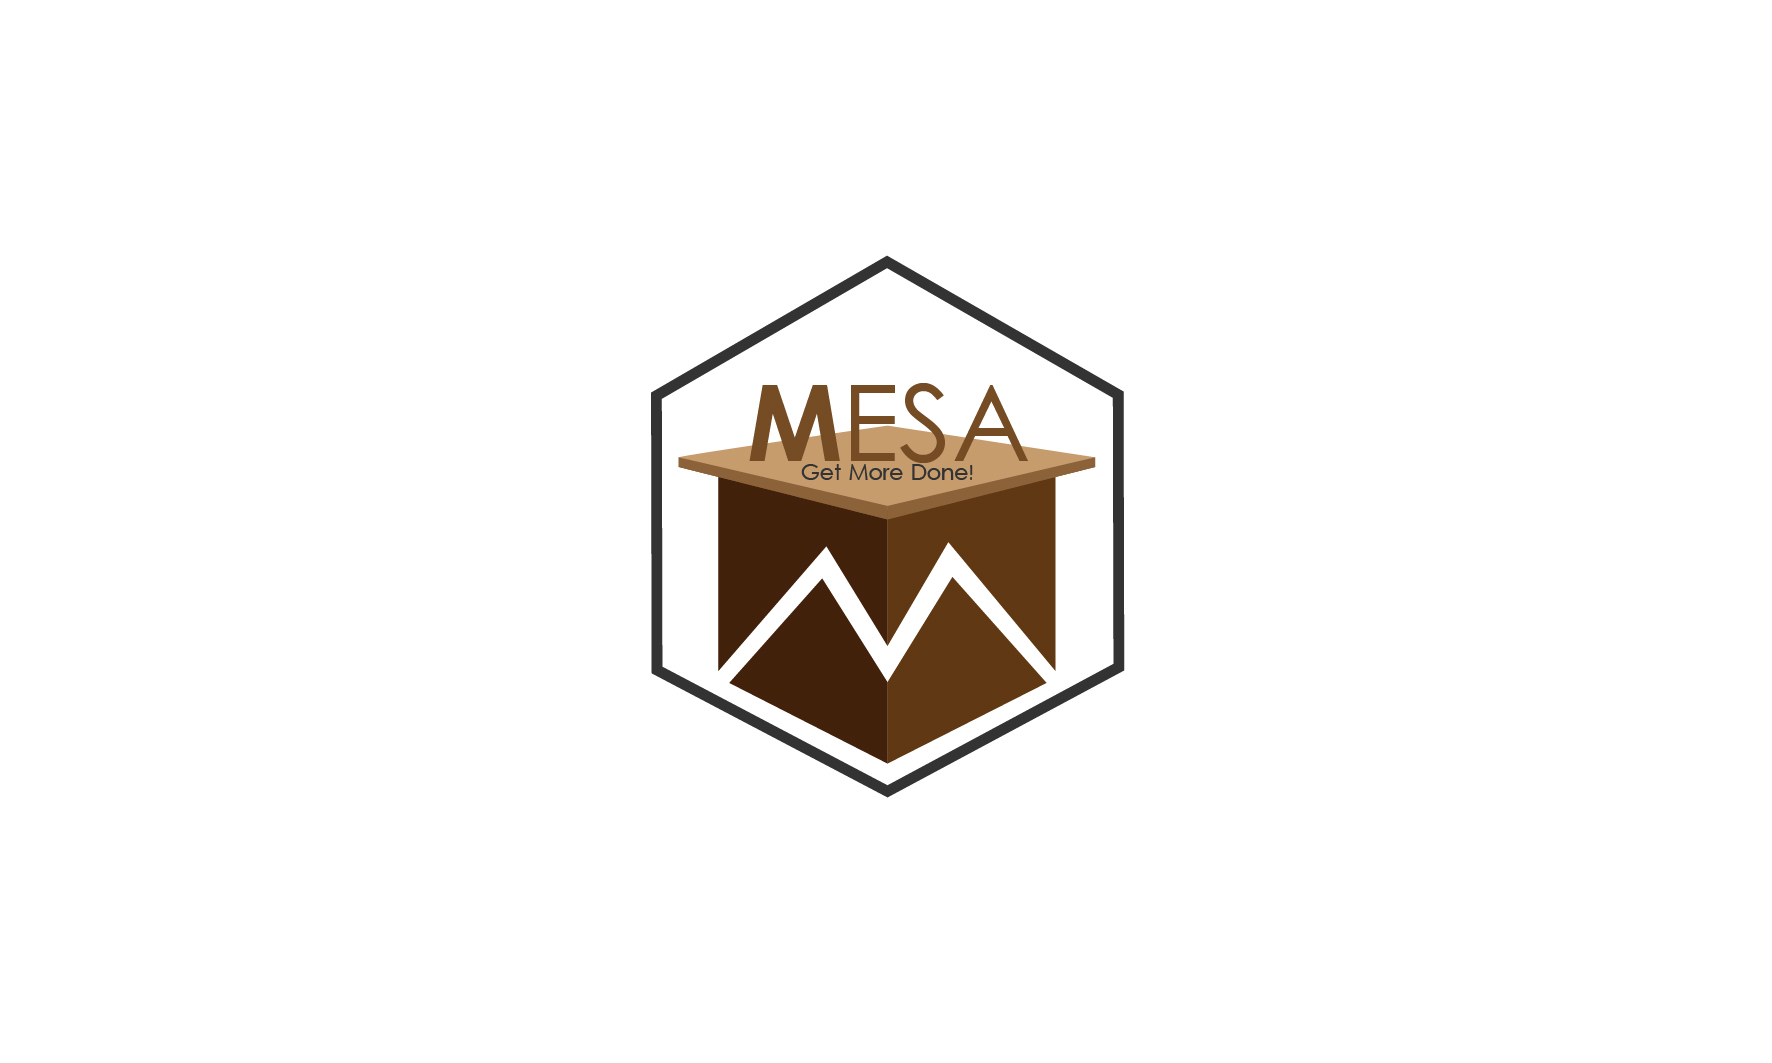 Logo Design by 3draw - Entry No. 154 in the Logo Design Contest Logo Design for Mesa.